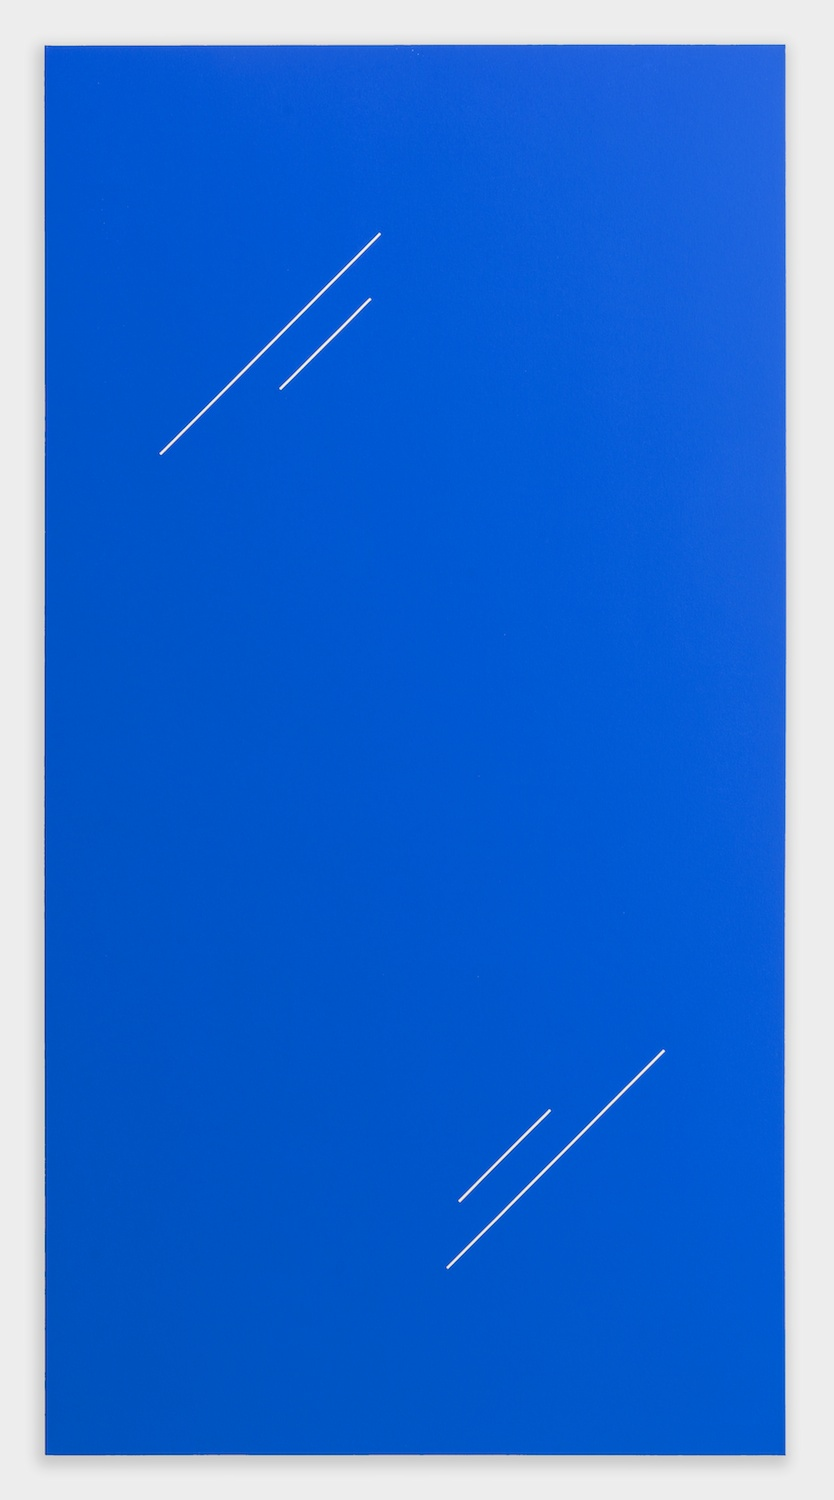 Paul Cowan  BCEAUSE THE SKY IS BULE  2013 Chroma-key Blue Paint On Canvas 78h x 41w in PC078